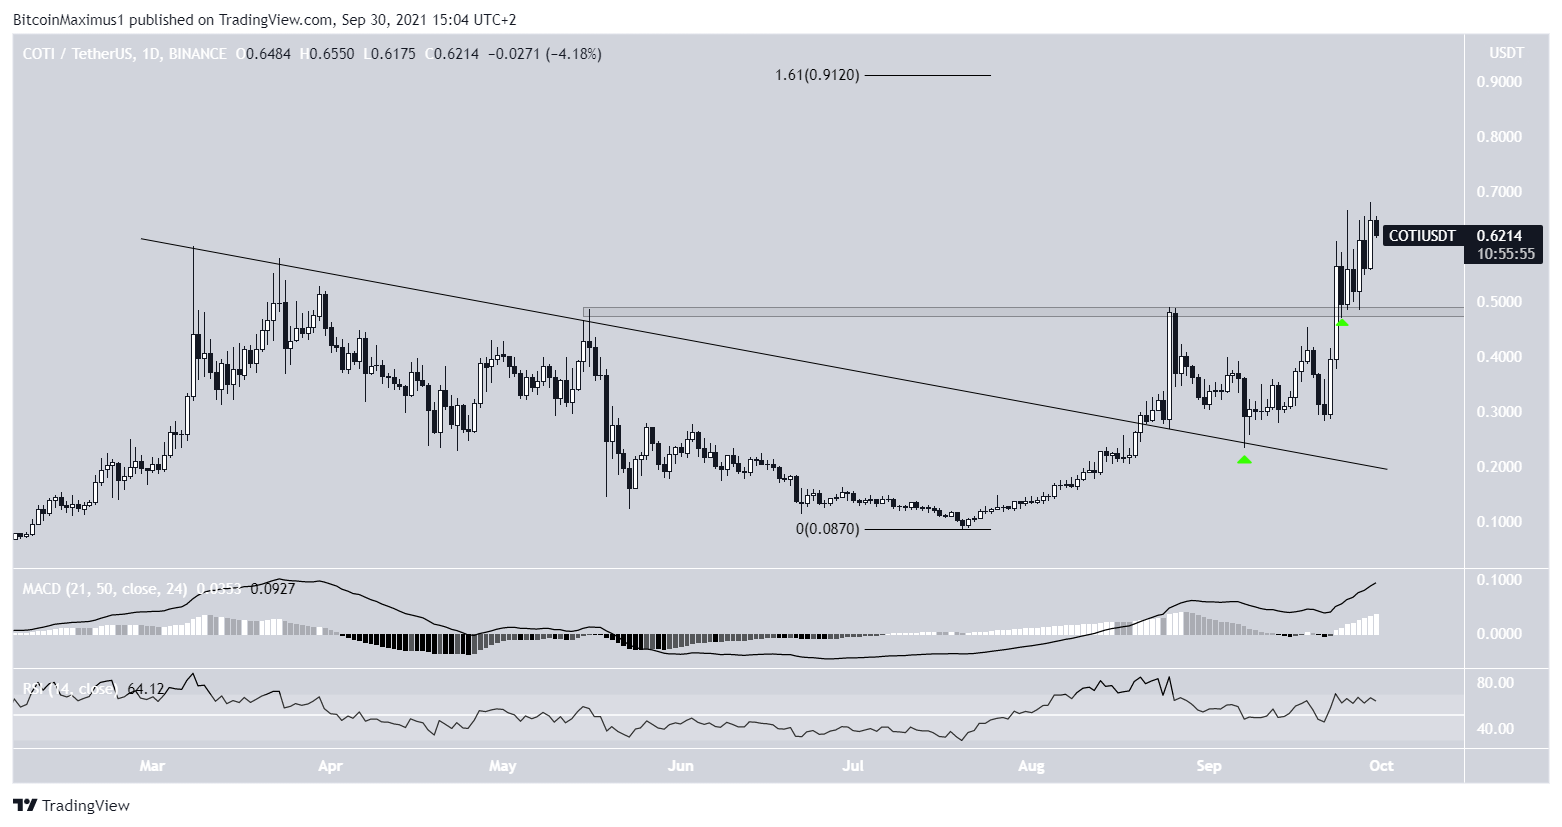 COTI Breakout